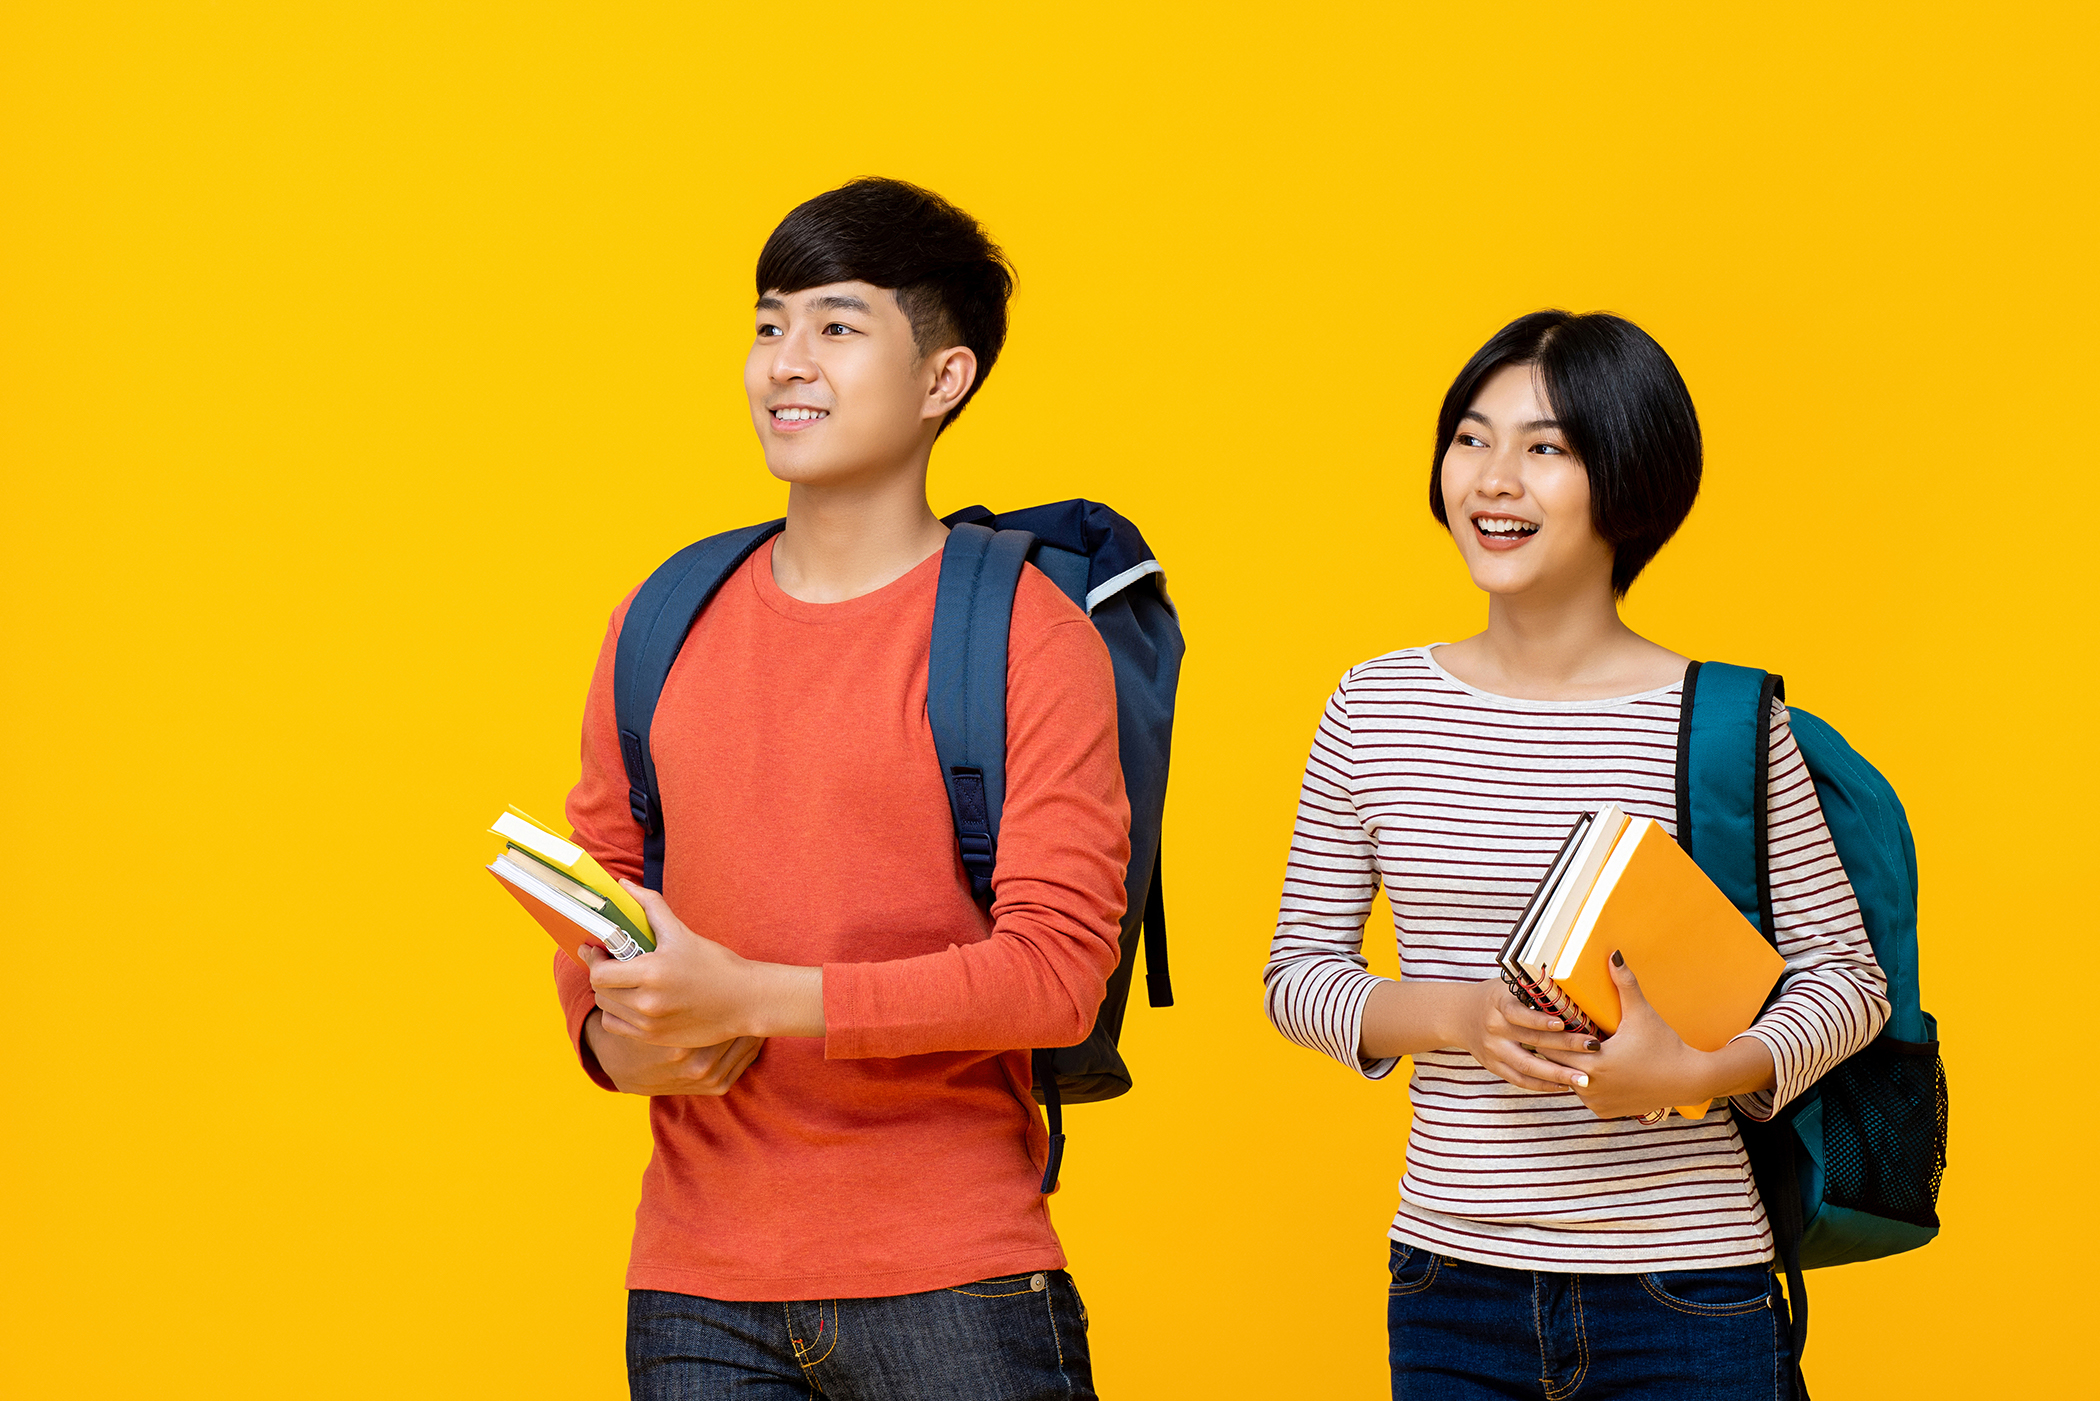 Top 7 Tips For College Freshmen To Make These Years Worth